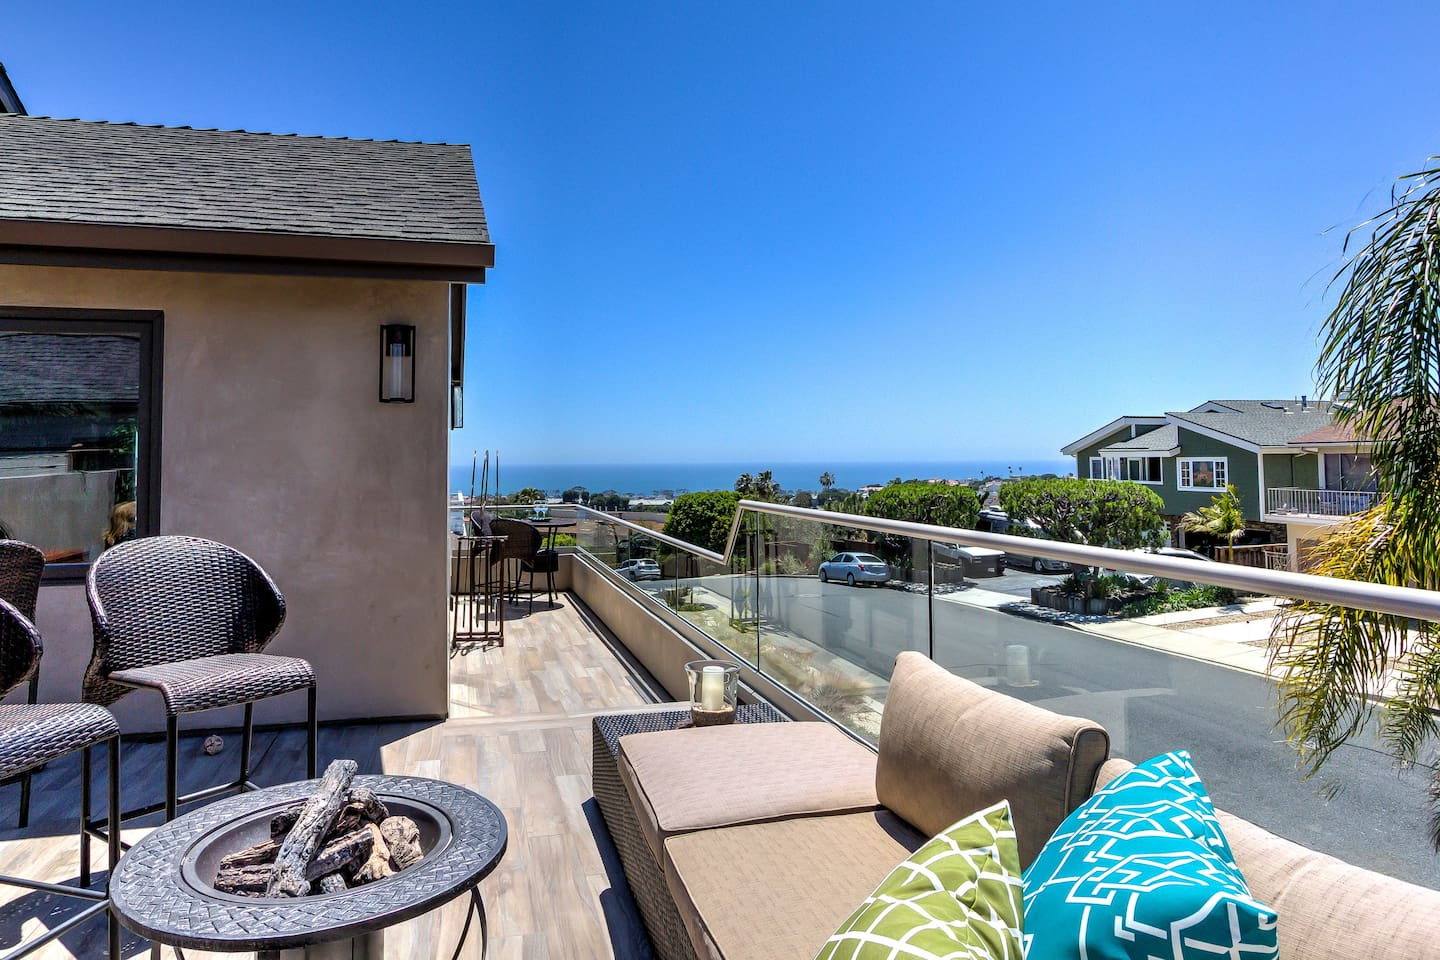 Ocean view deck has sectional seating with a fire pit for evenings of Relaxation!